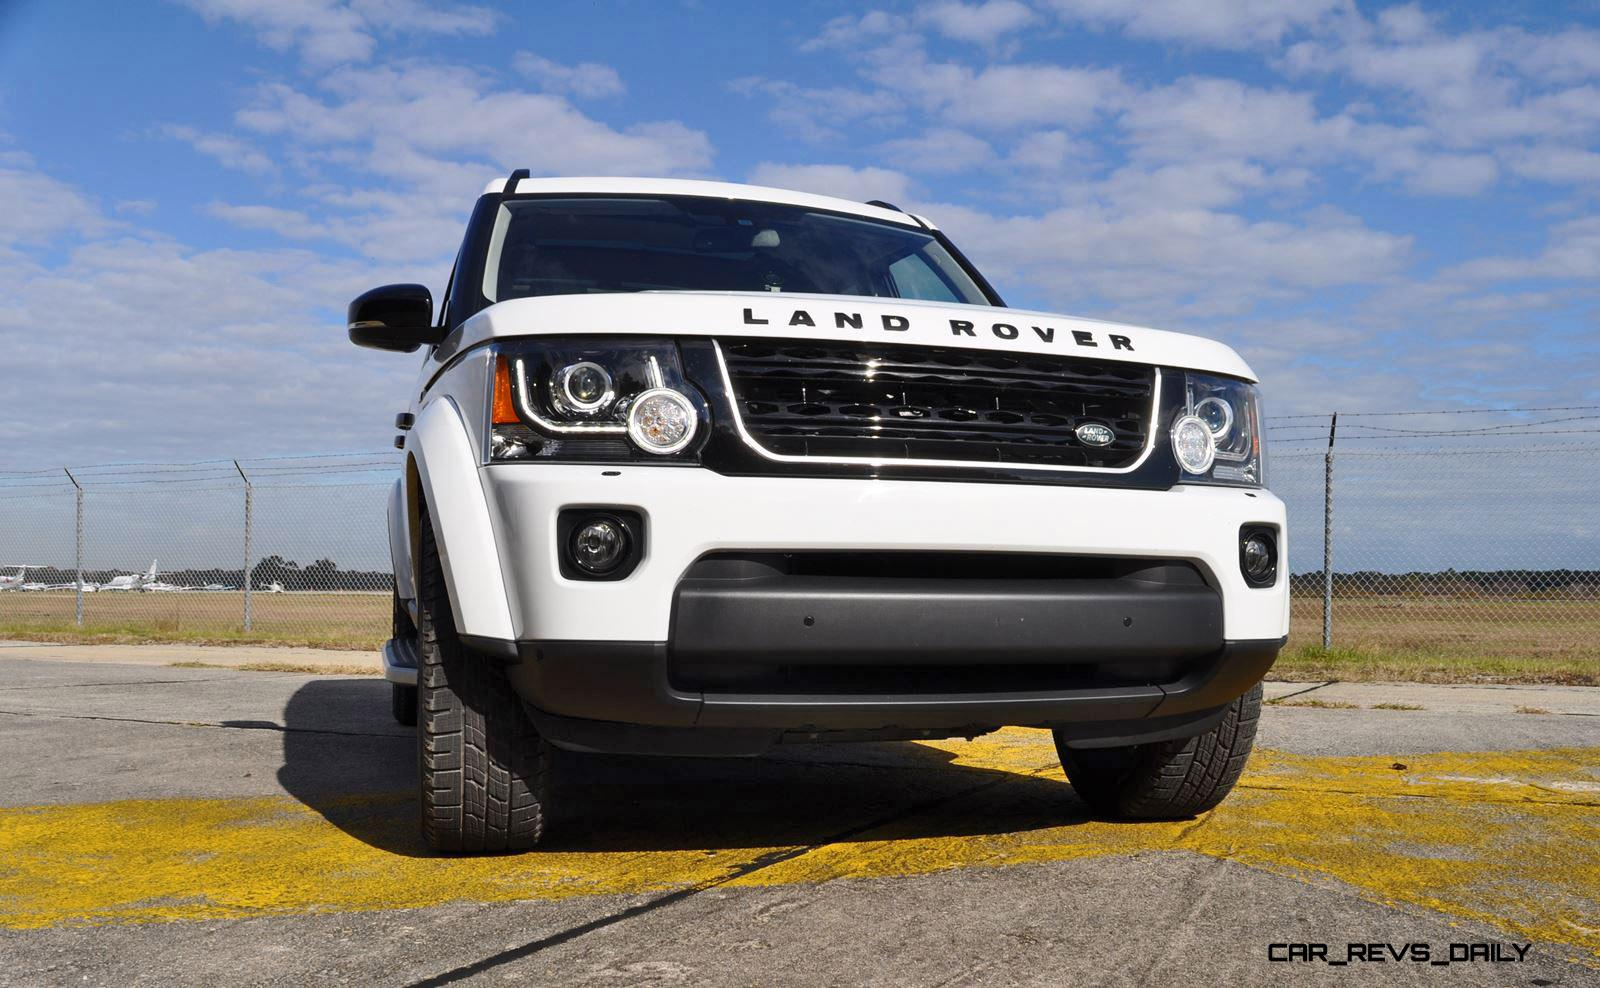 houston package image review largest open land interior click landrover lux black resolution hse rover to